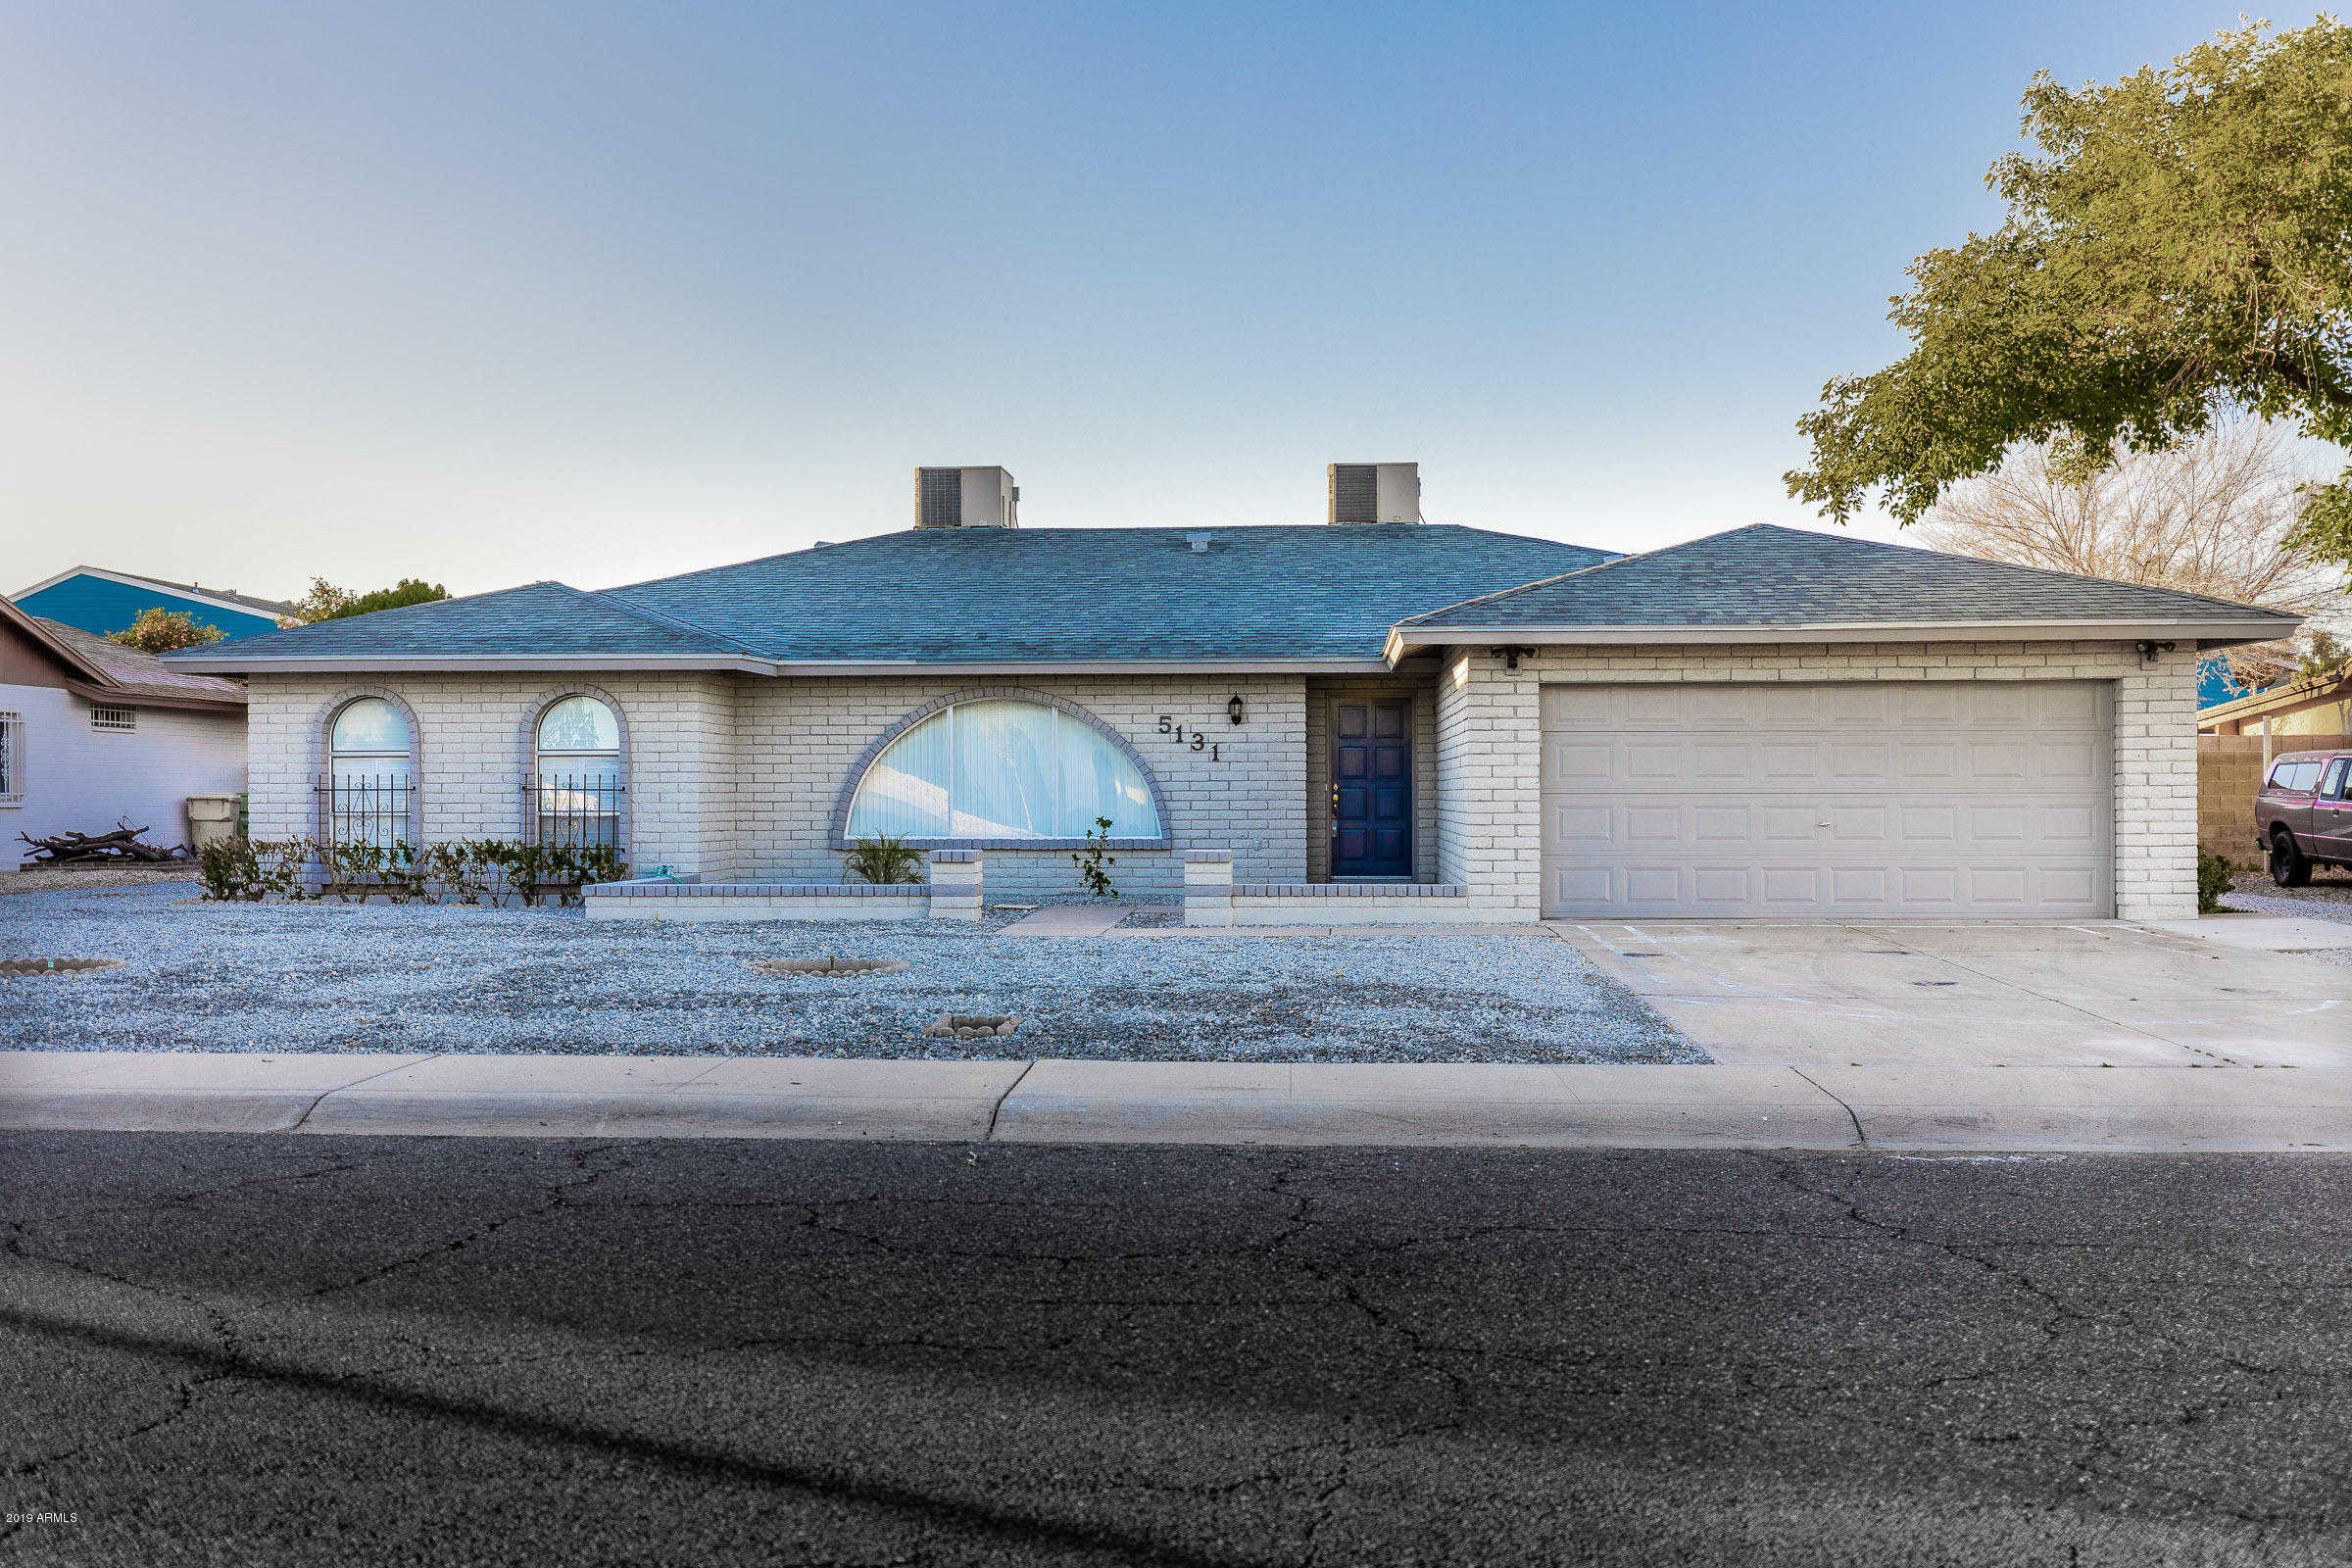 $315,000 - 5Br/2Ba - Home for Sale in Northern Palms 4, Glendale